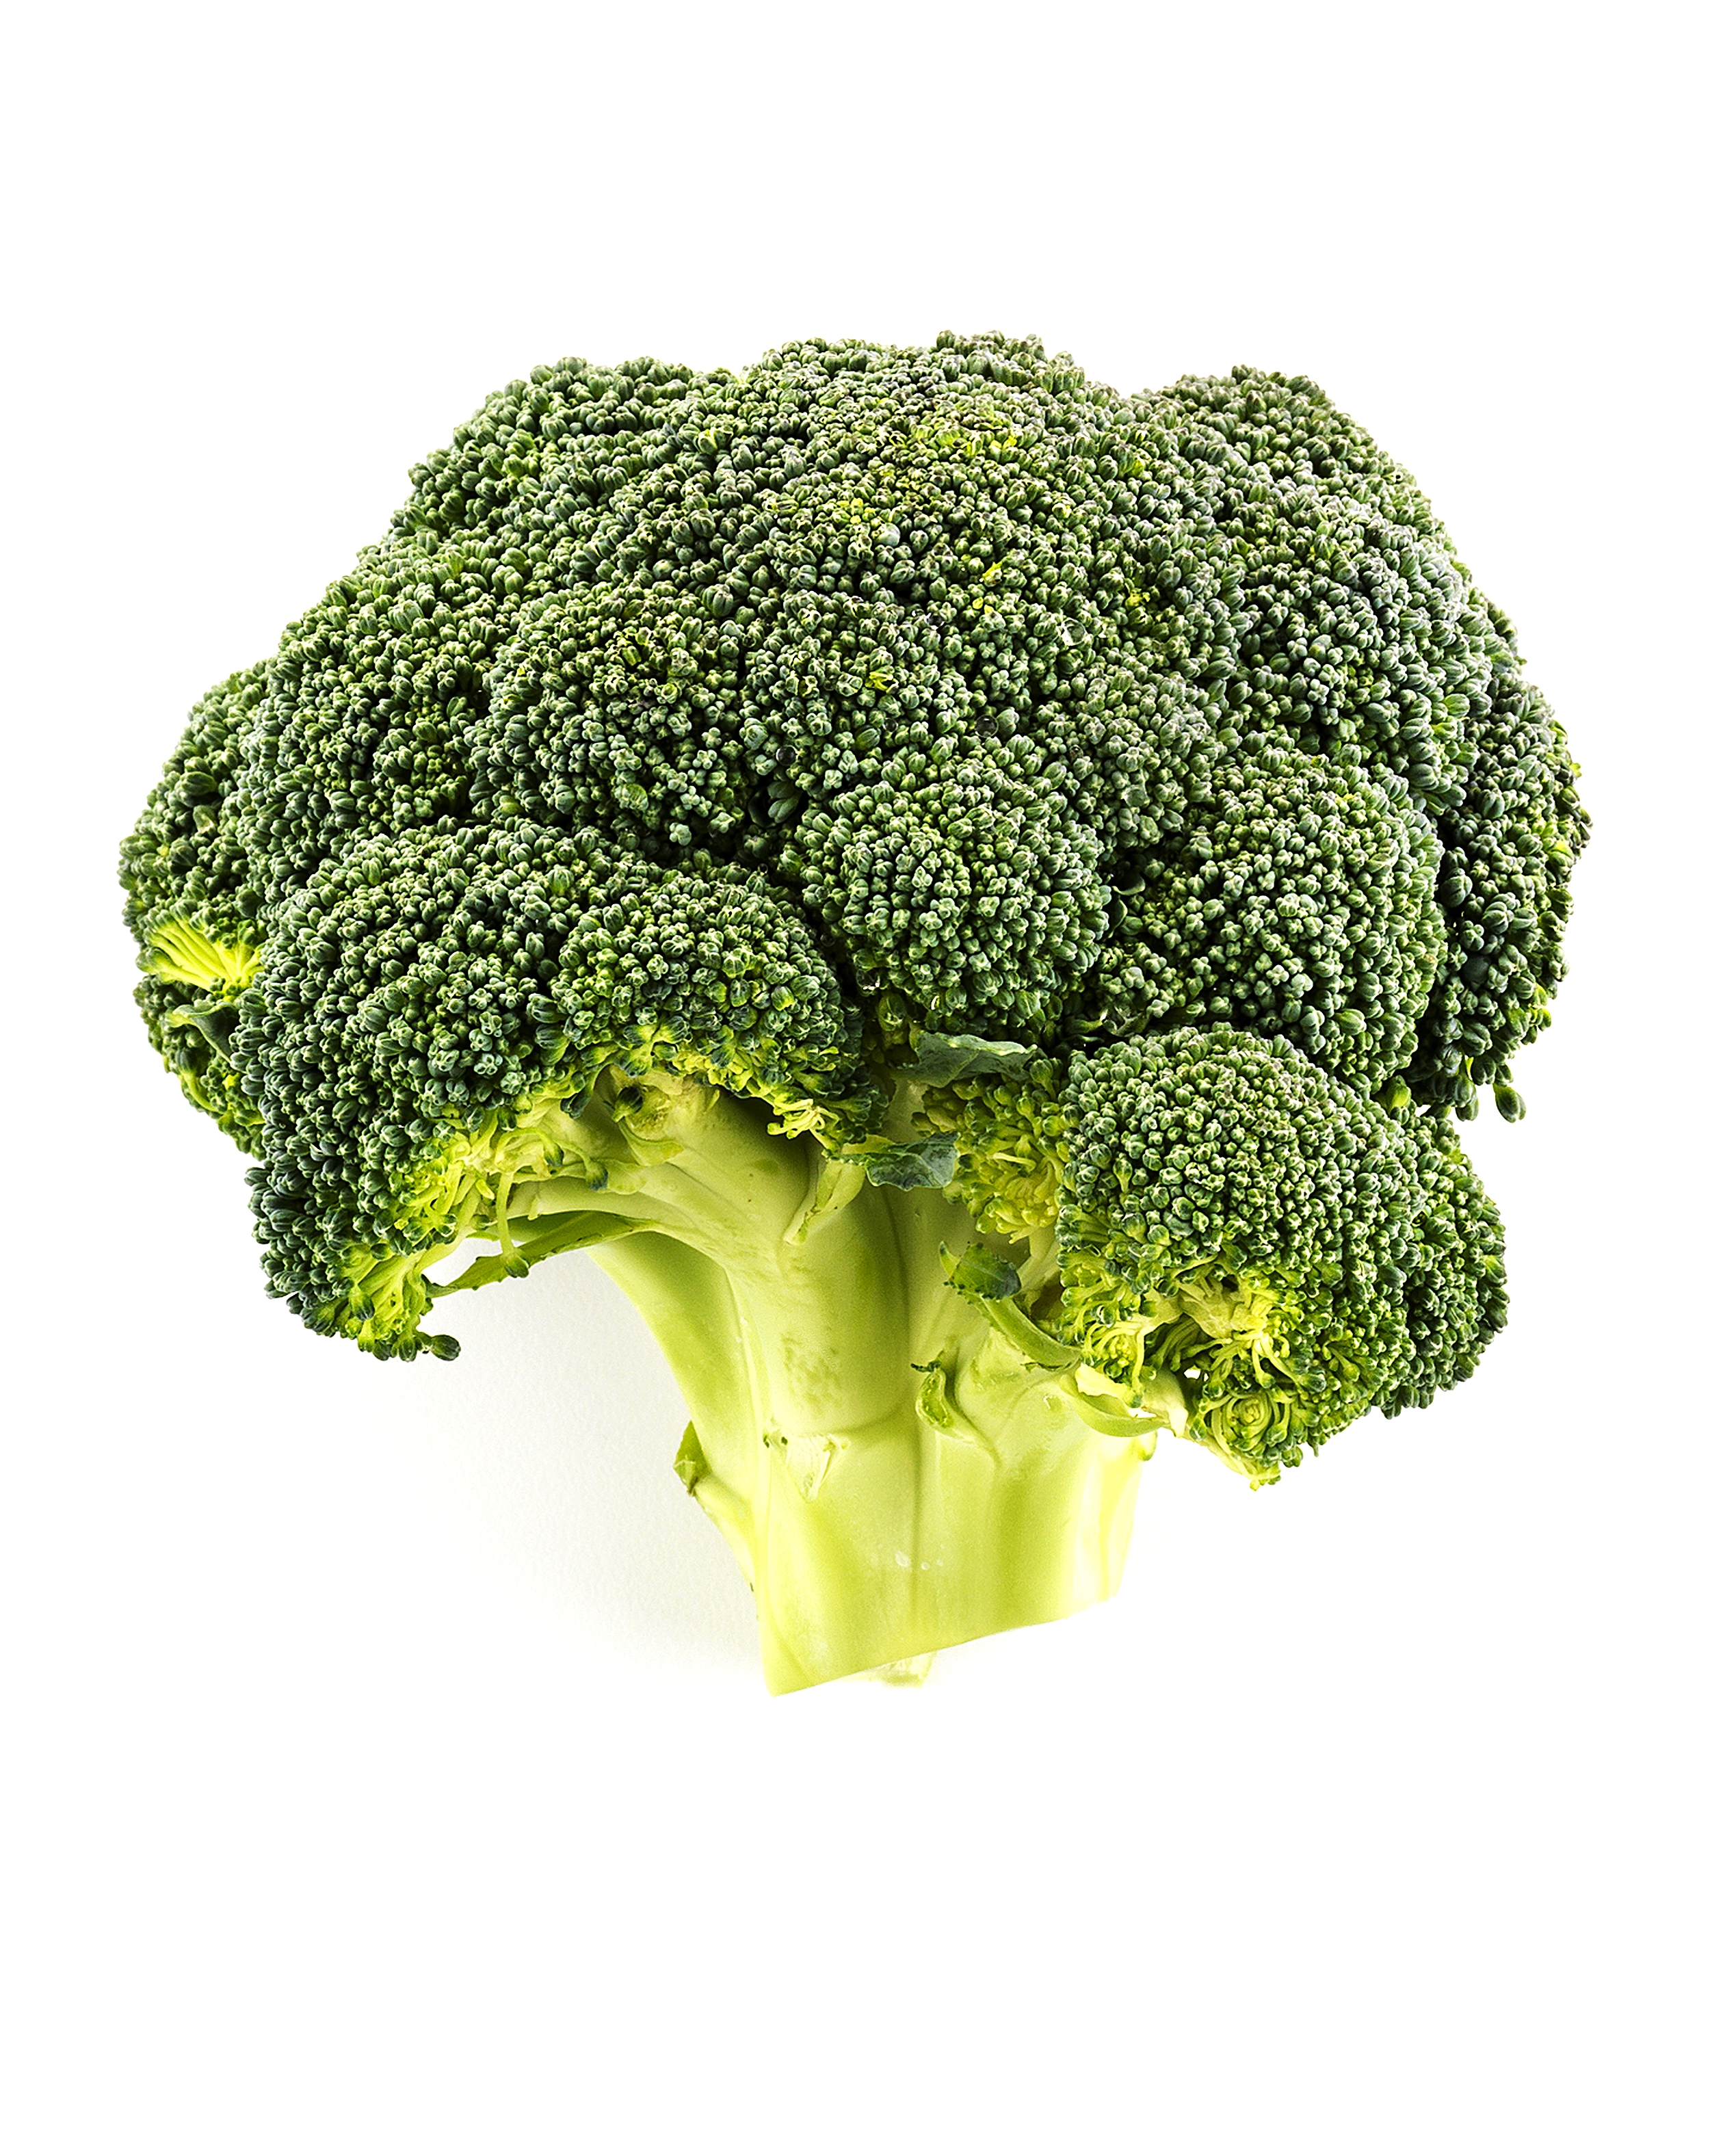 so07056_TL_Broccoli_ 013 copy.jpg